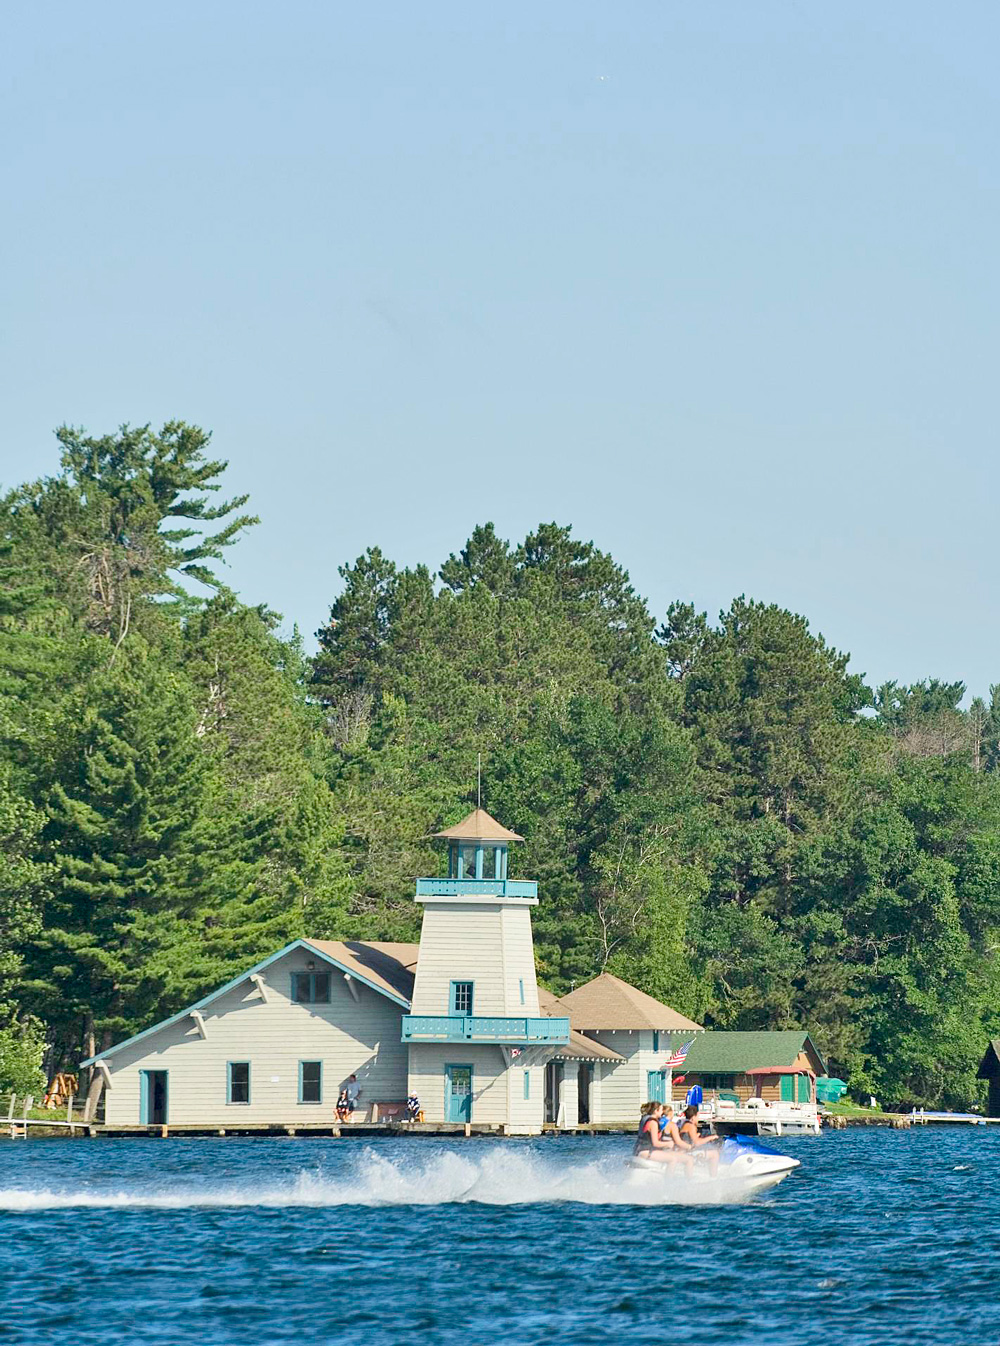 Minocqua: where to stay